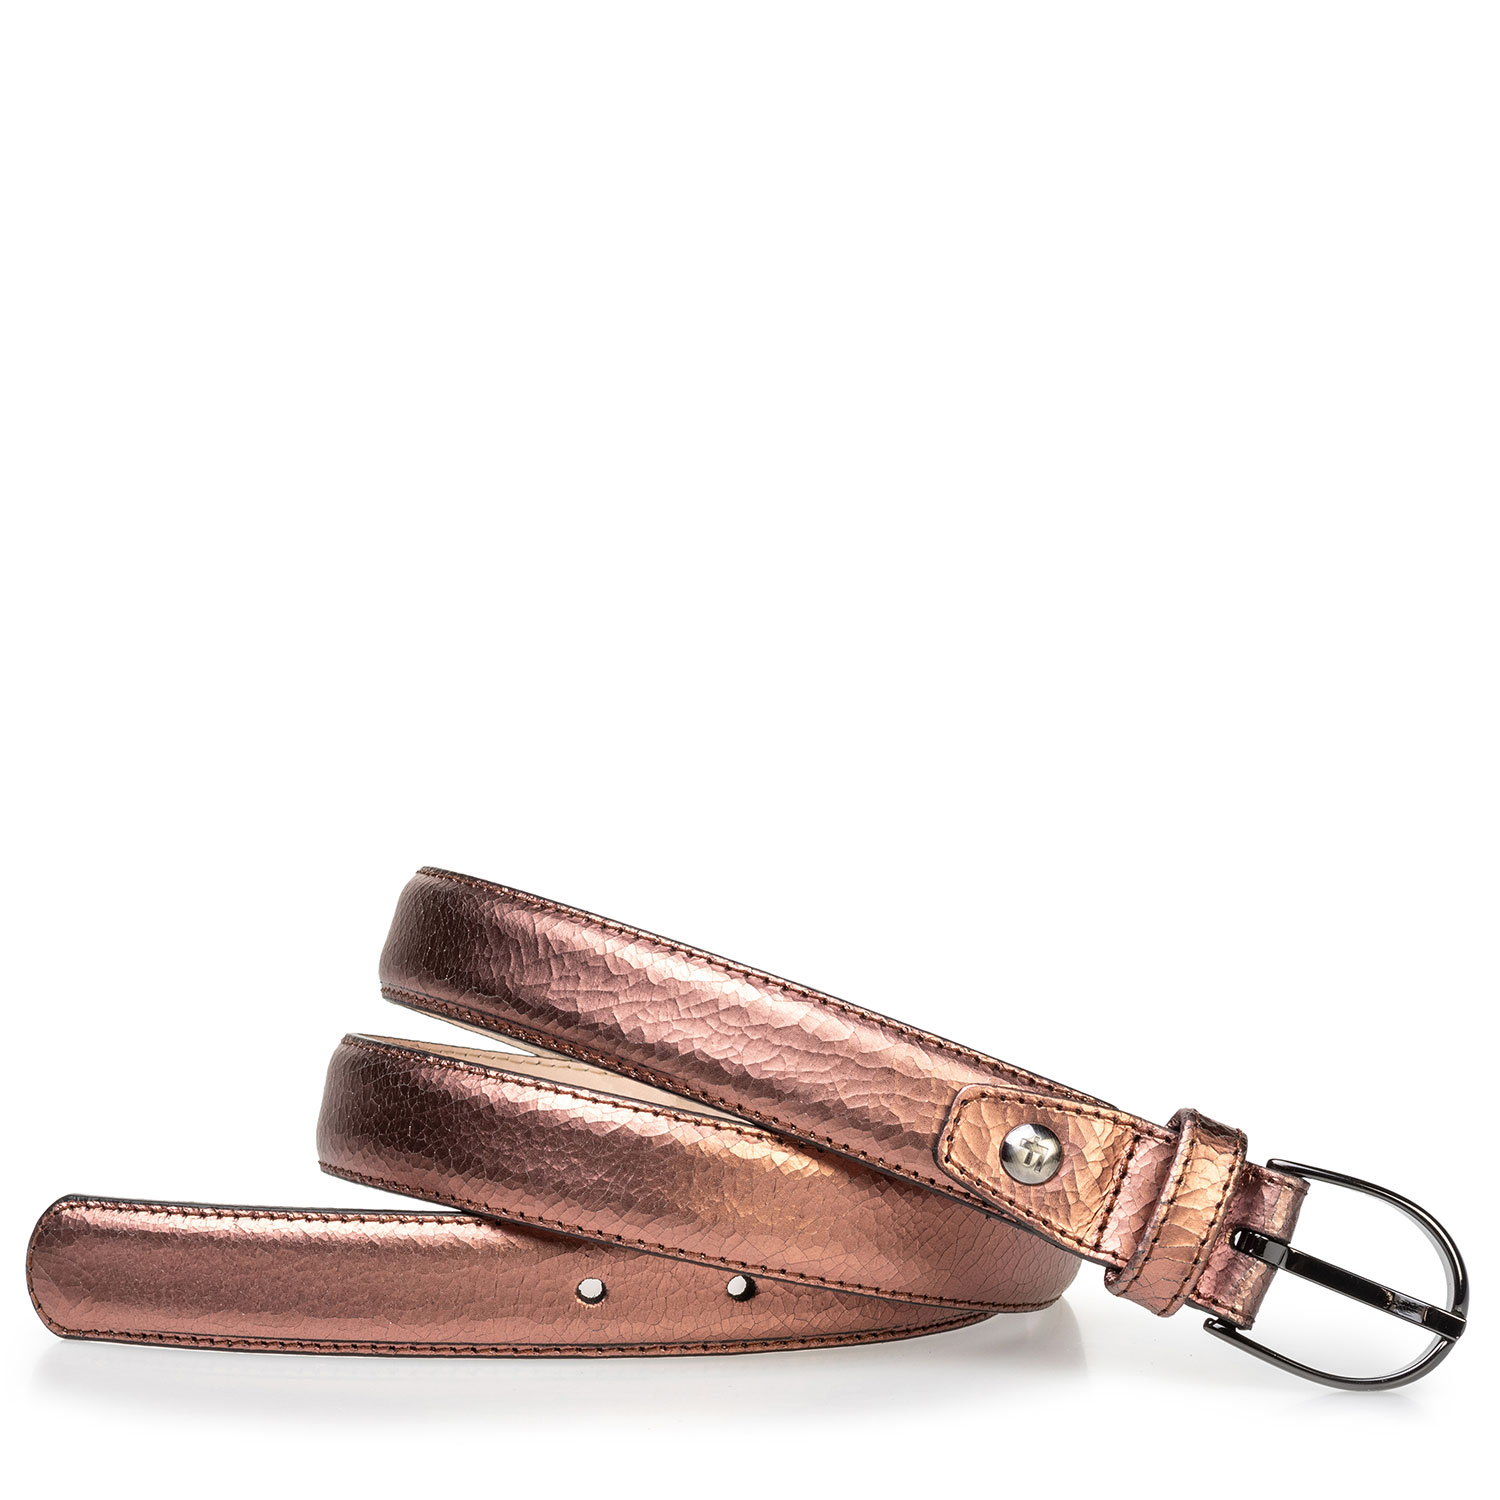 75813/76 - Women's belt copper leather craquelé